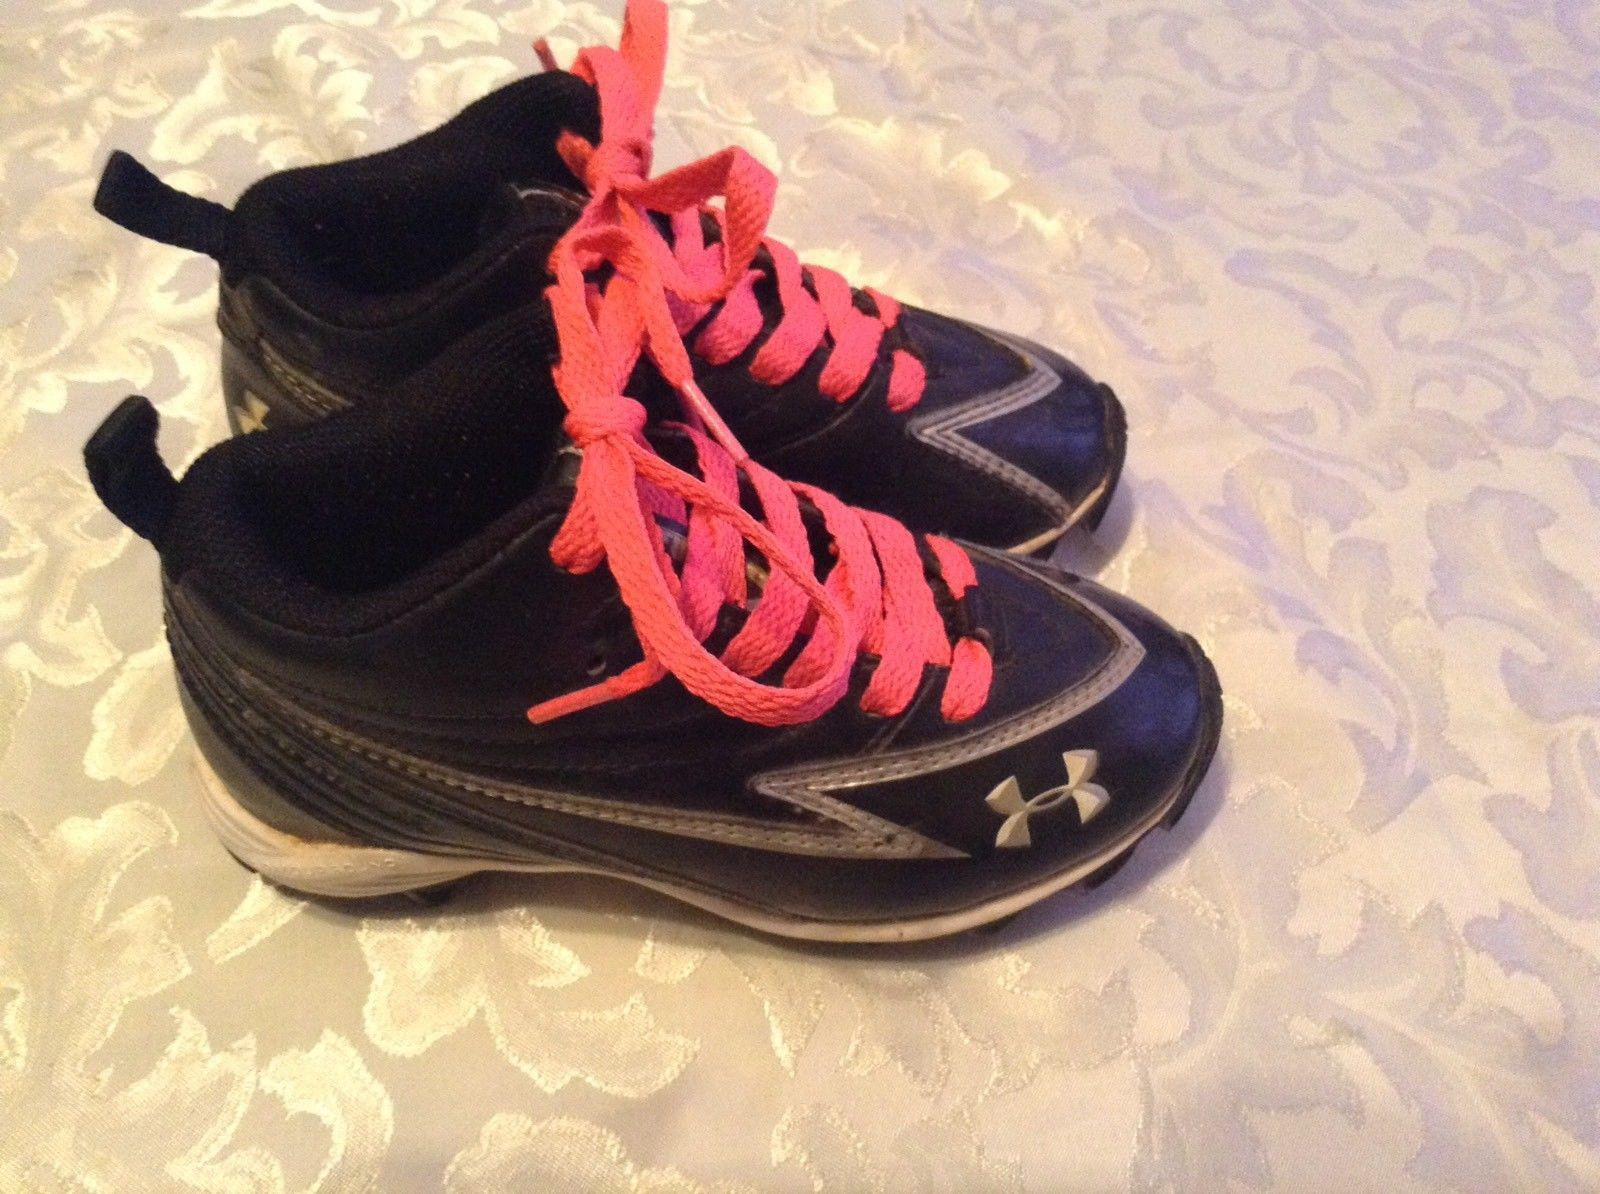 8e5b2761ff0 Under Armour football cleats Size 12 Hammer and 50 similar items. S l1600